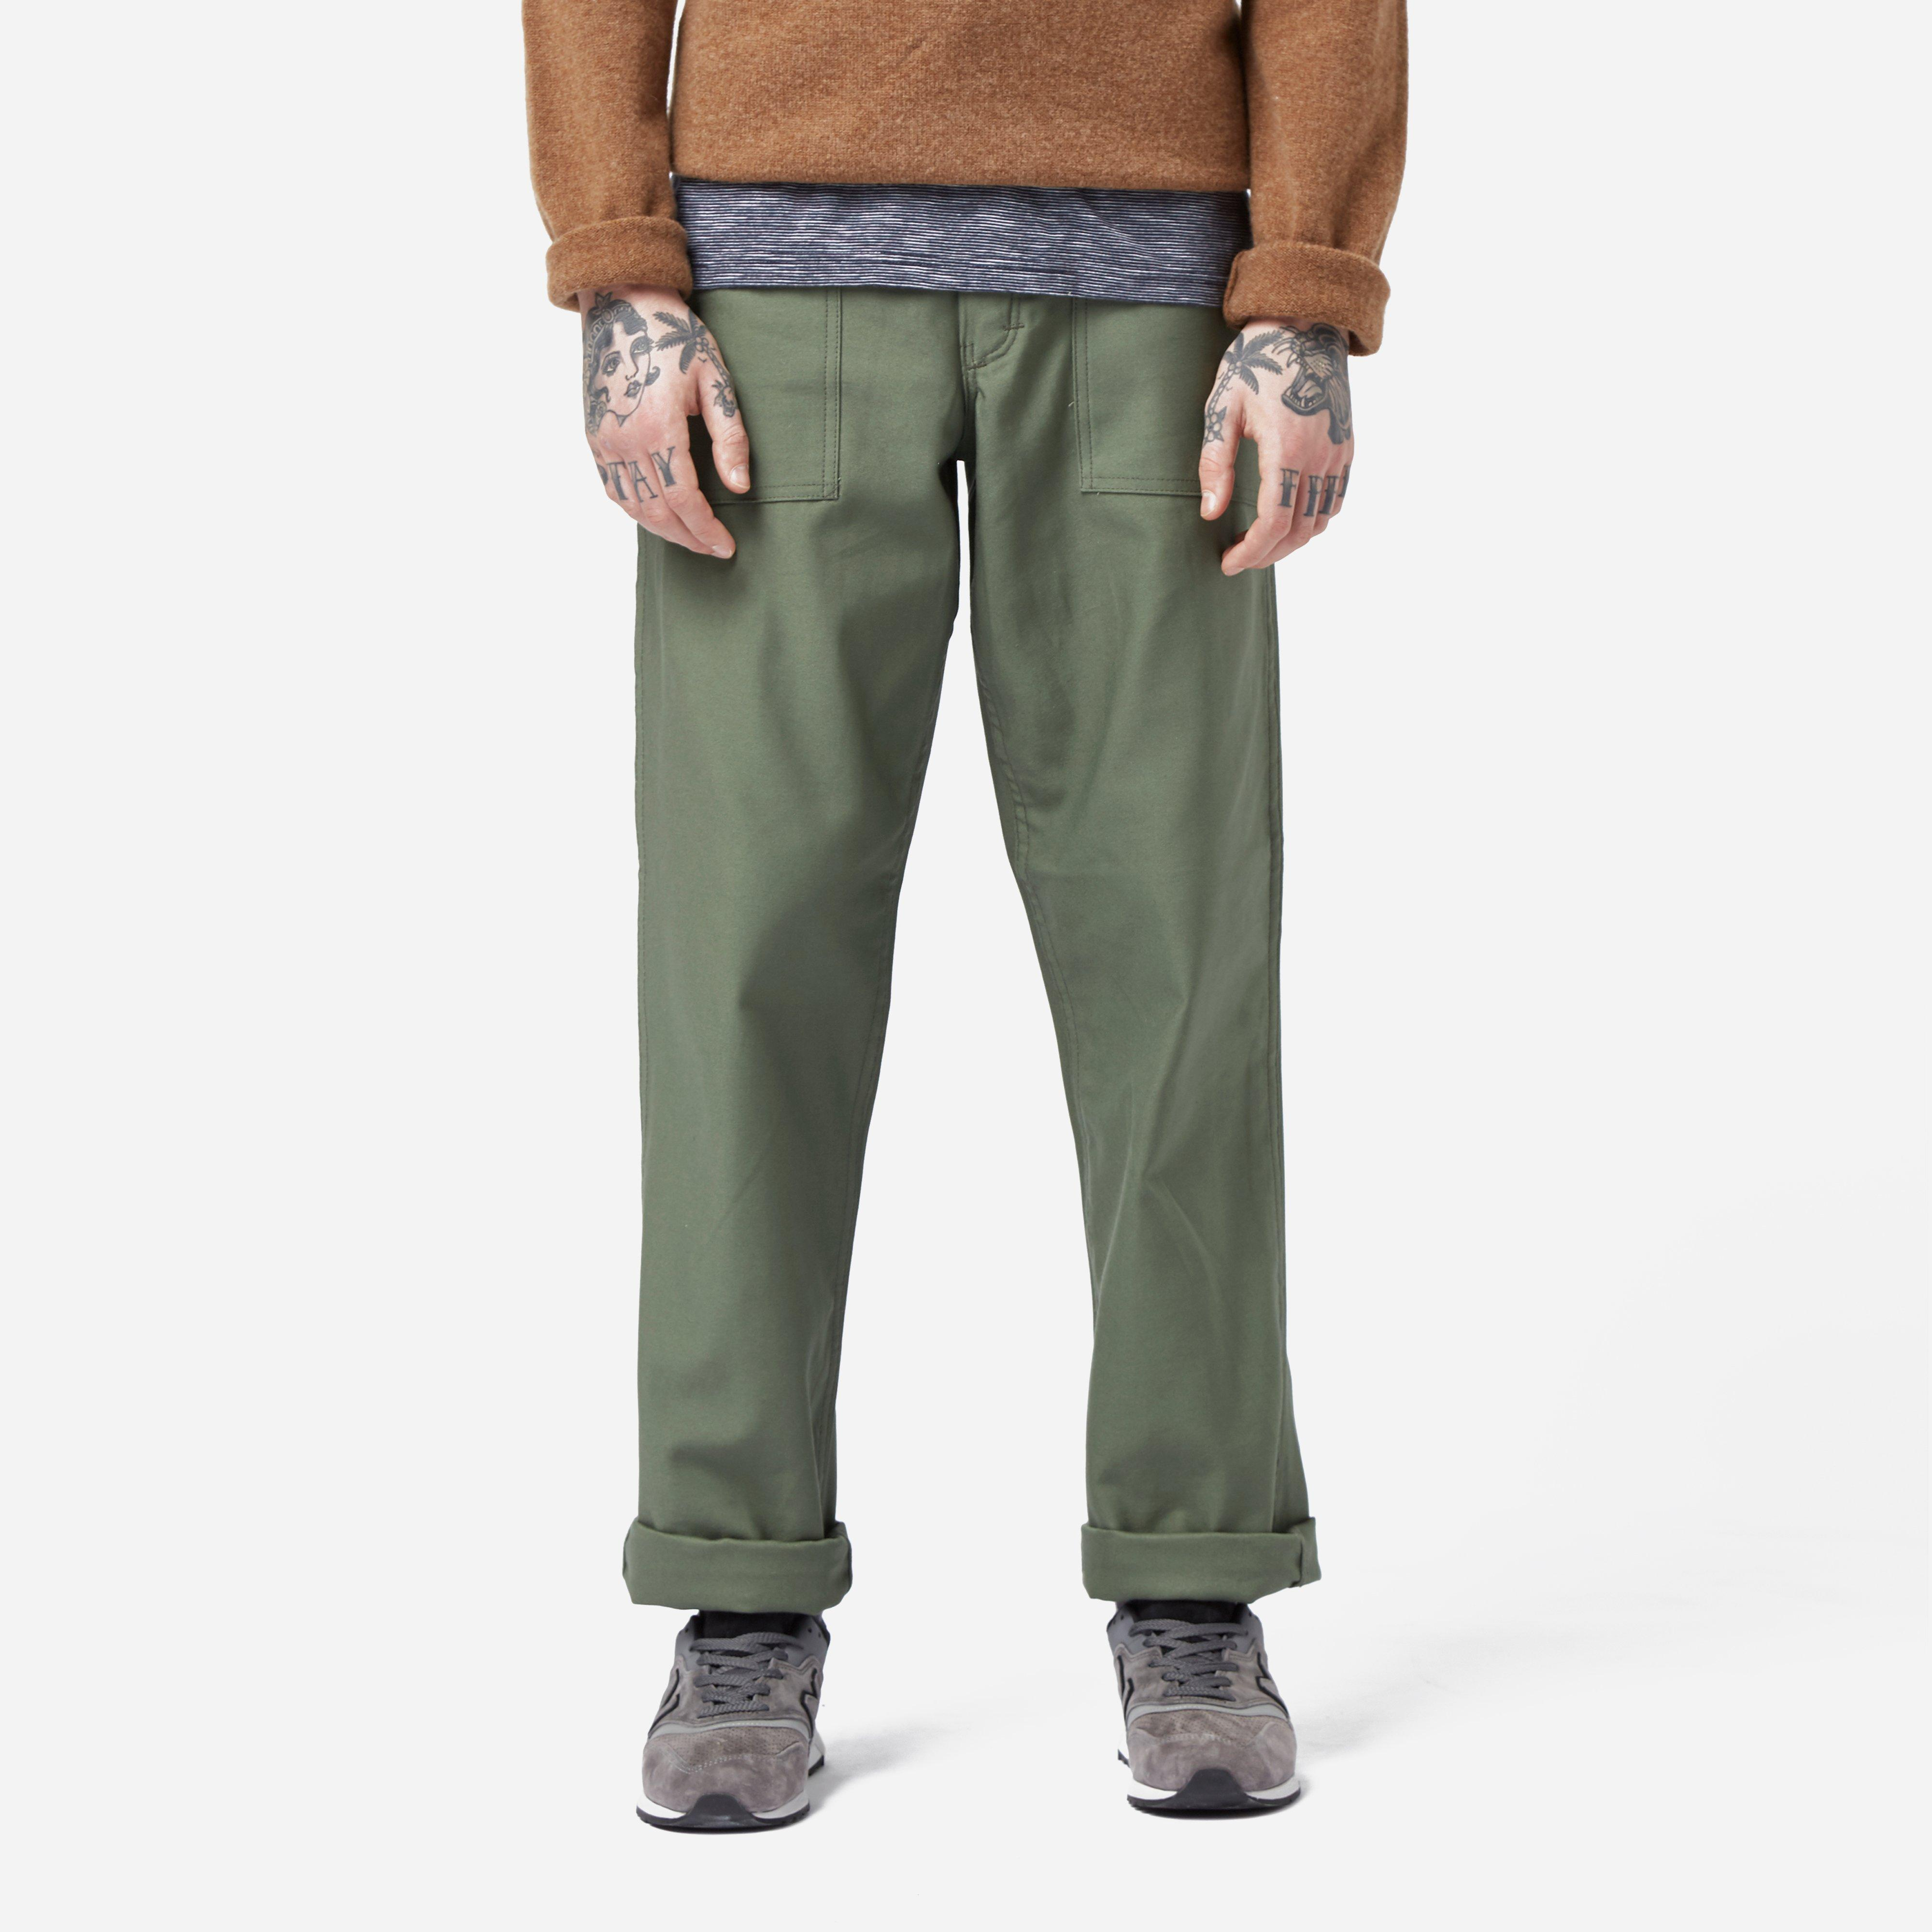 Stan Ray 1100 Original Fit 4 Pocket Fatigue Pant